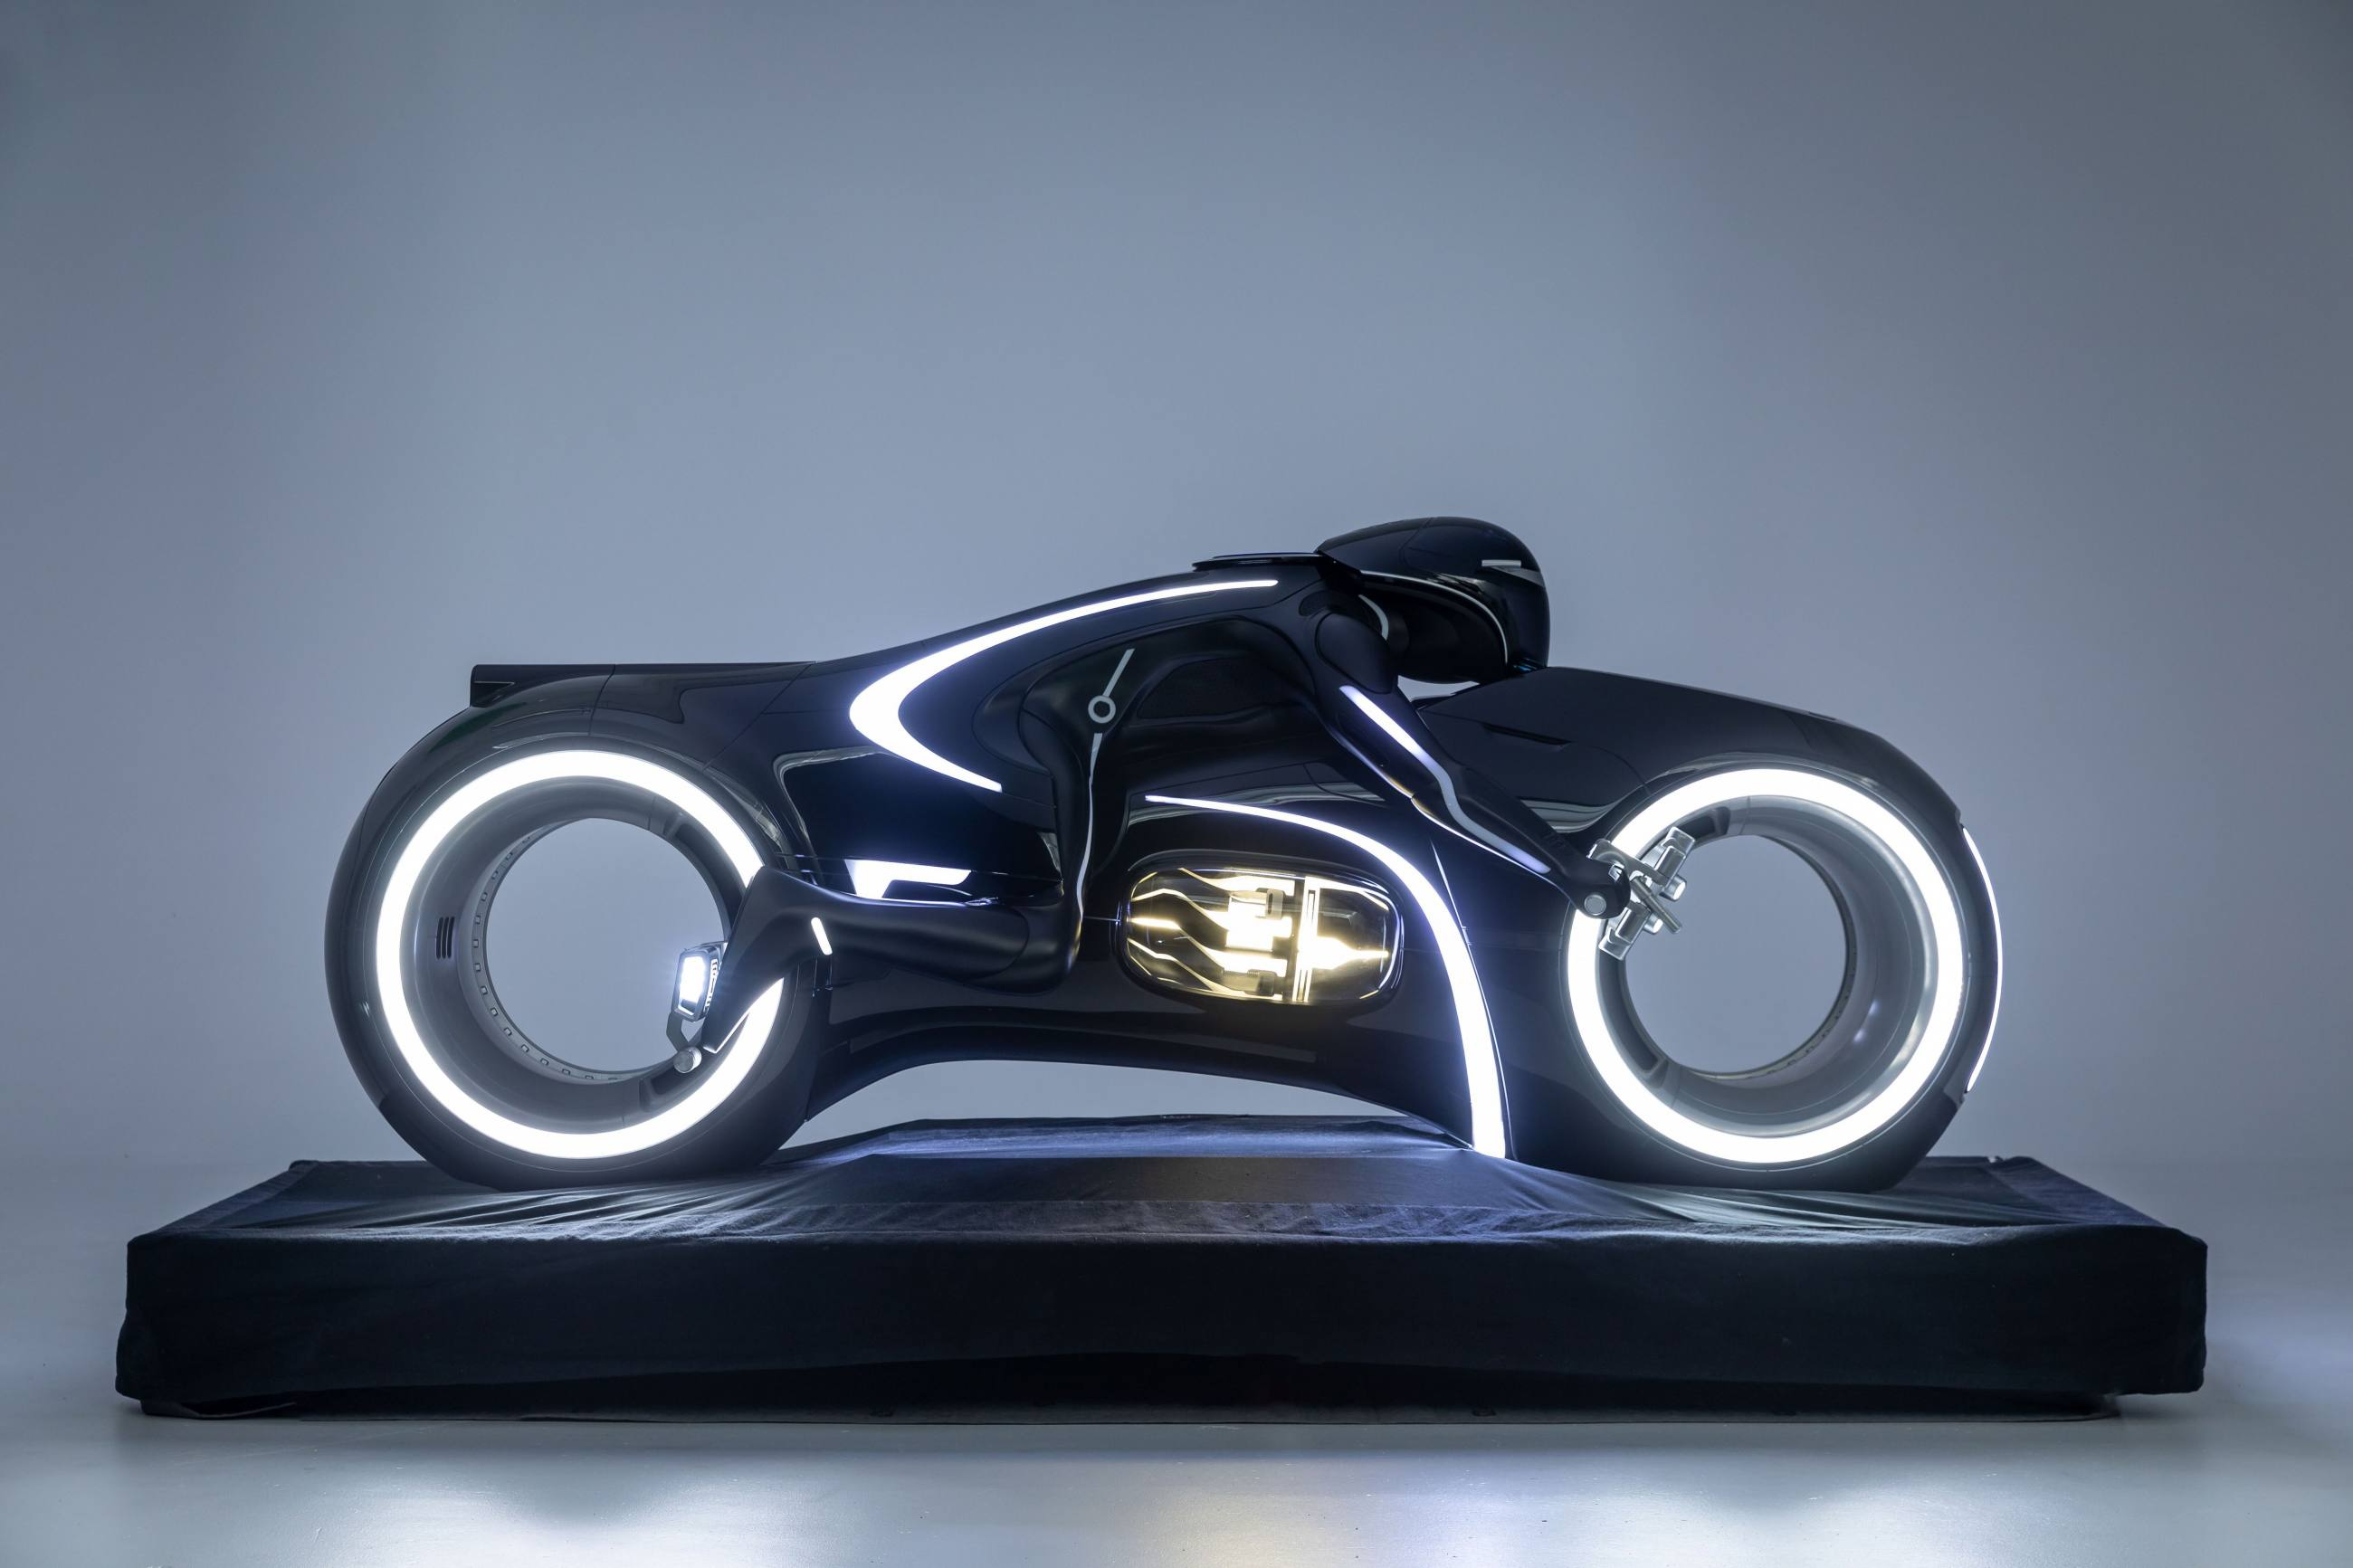 Light Cycle from Tron: Legacy (2010) | Photo: Petersen Automotive Museum